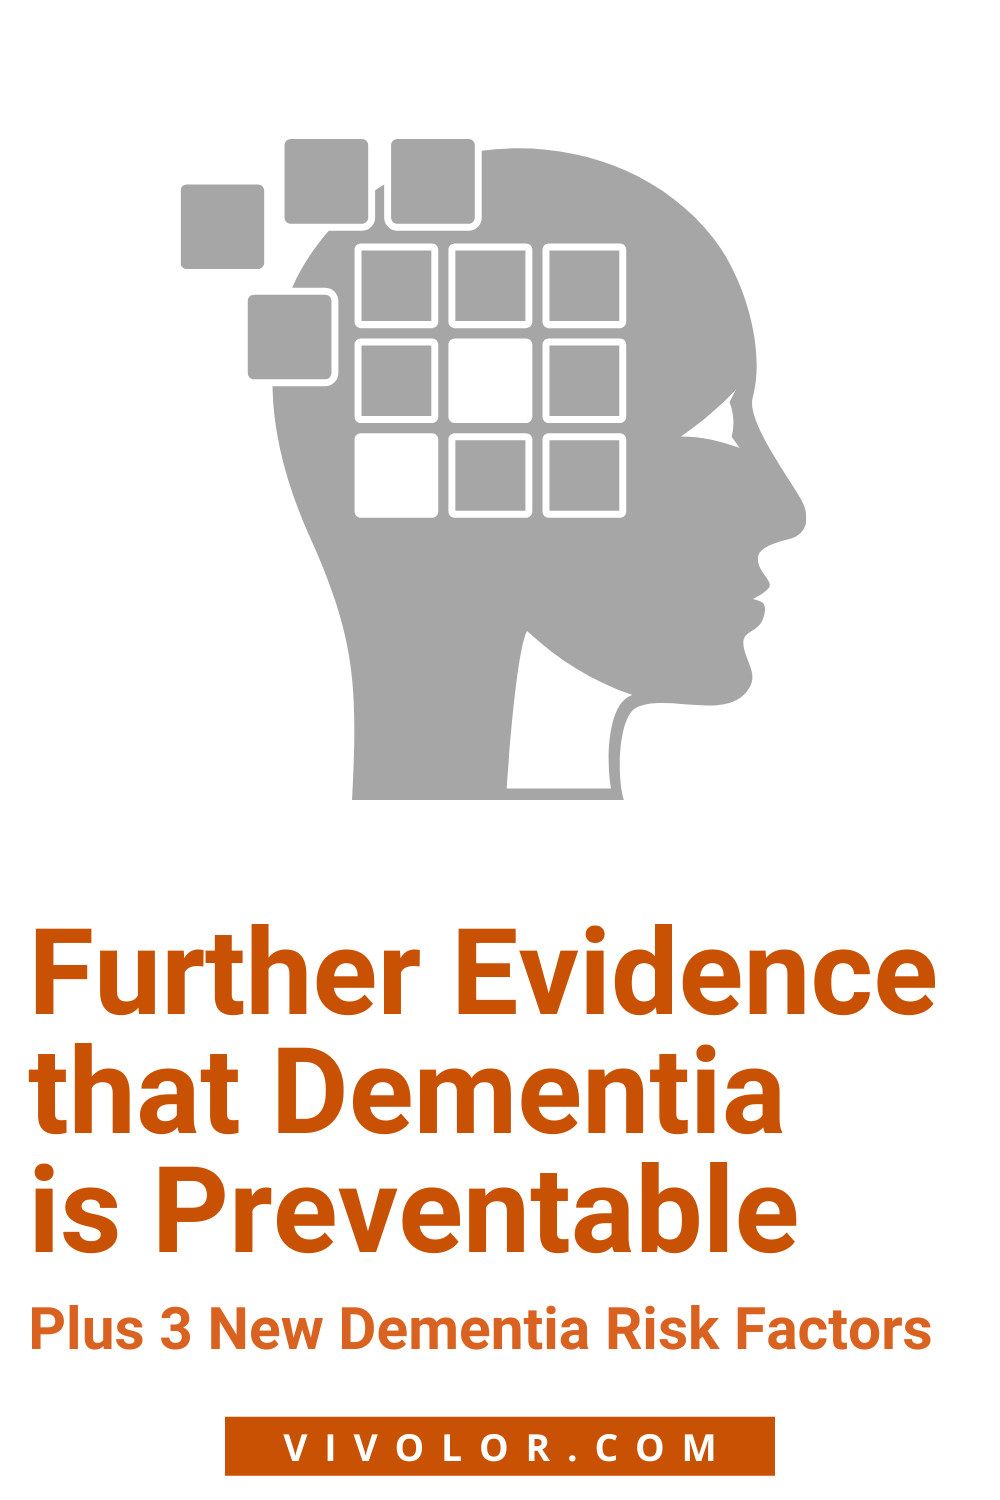 Further evidence that dementia is preventable